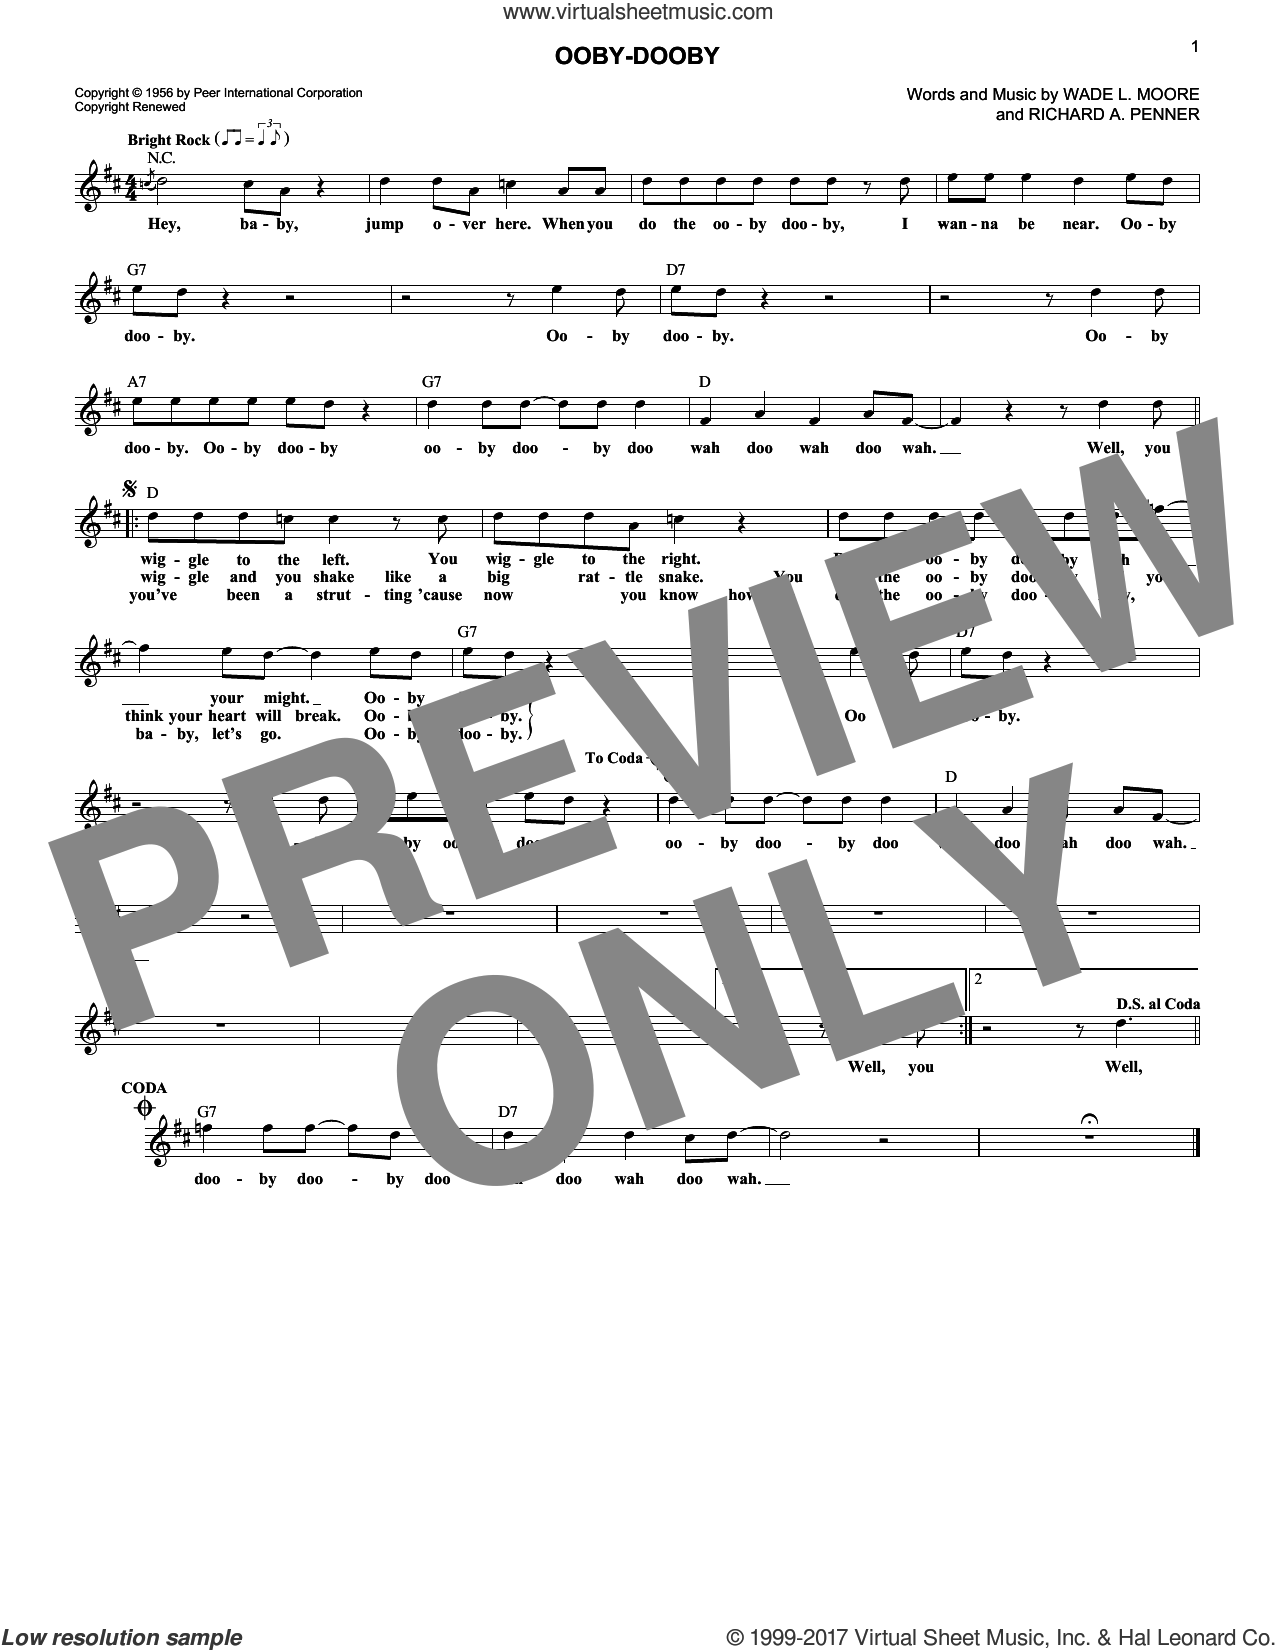 Ooby-Dooby sheet music for voice and other instruments (fake book) by Roy Orbison, Richard A. Penner and Wade L. Moore, intermediate. Score Image Preview.